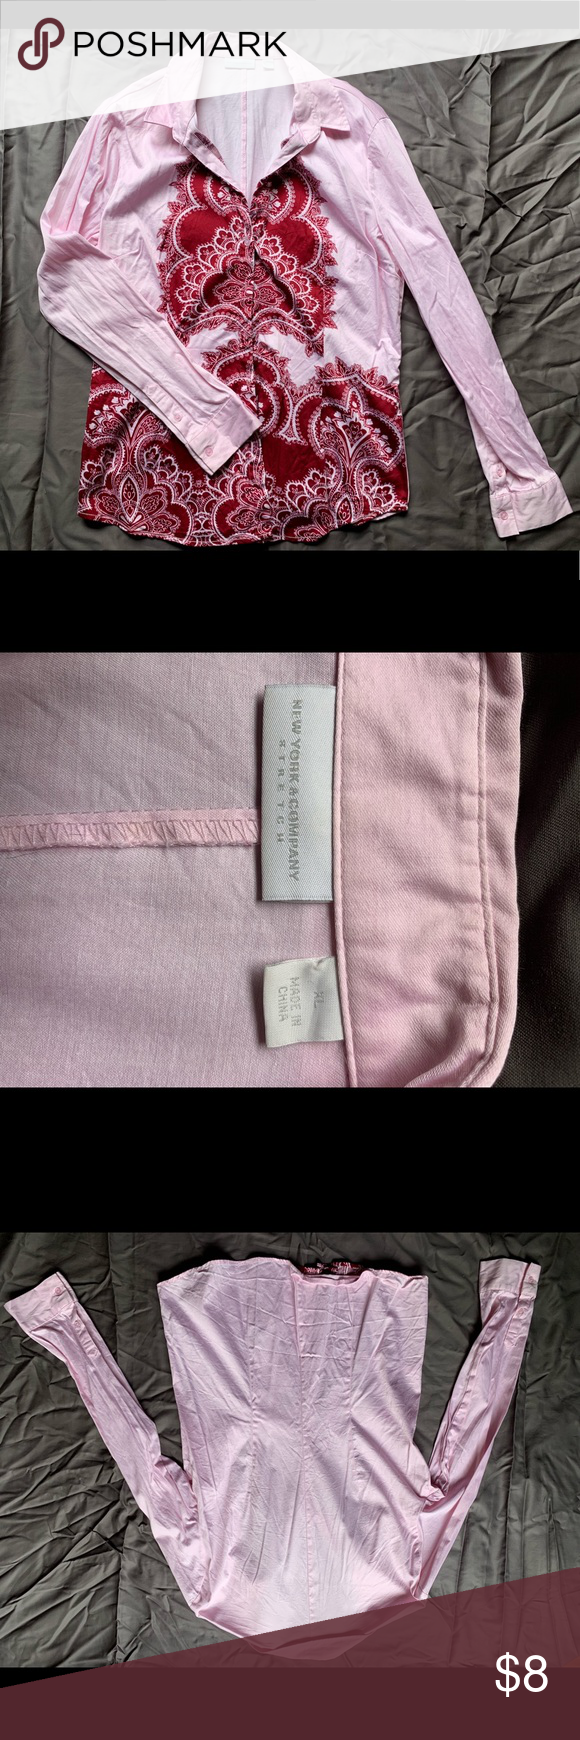 128a3ed83c34d0 EUC NY&C pink and red button down shirt EUC NY&C pink and red button down  shirt